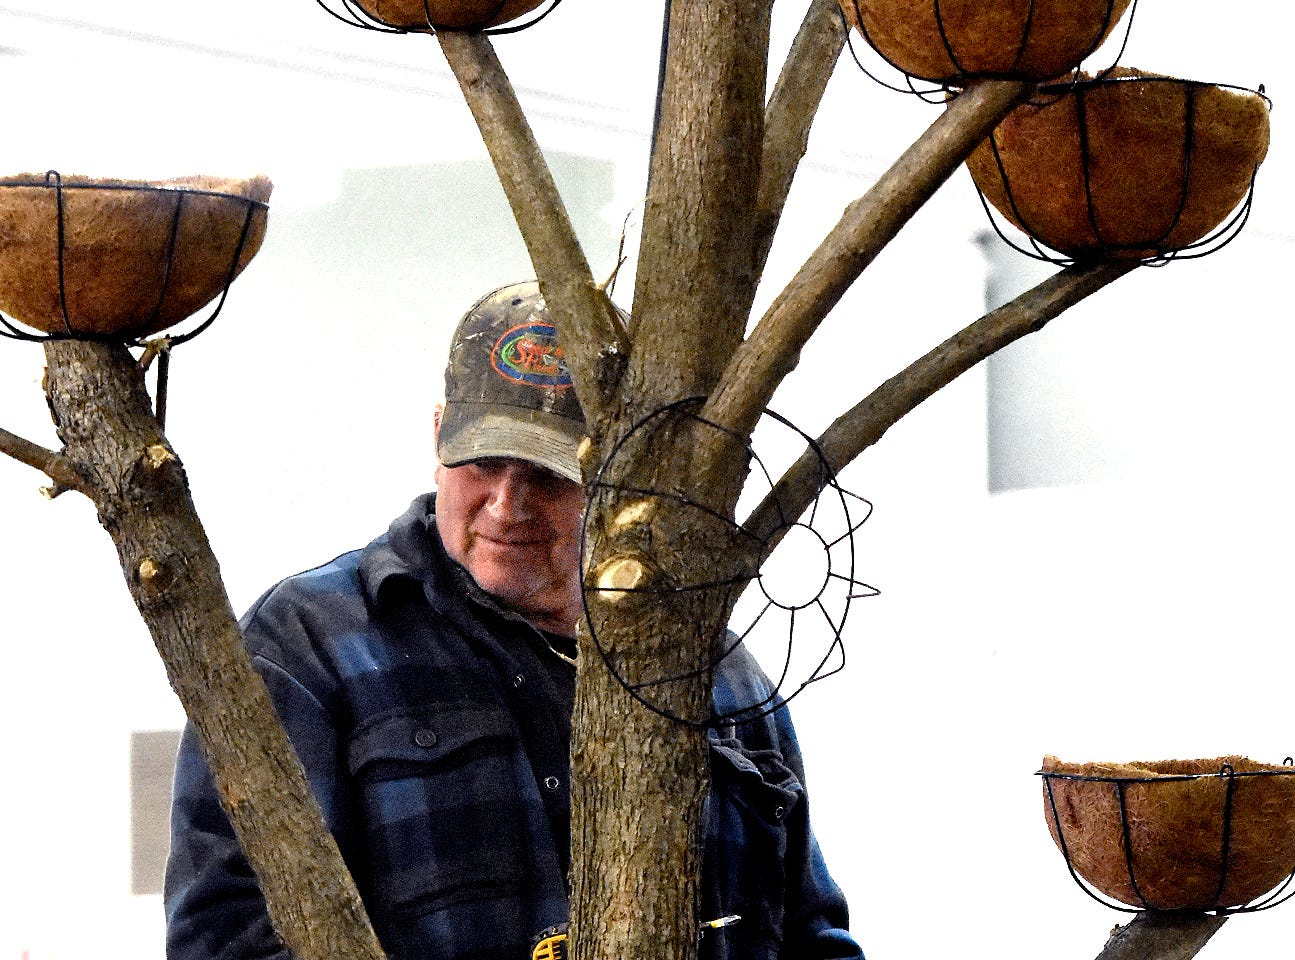 """Steve Bupp, co-owner of Cross Creek Farm in Codorus Township, creates a flower tree at the PA Garden Show of York Wednesday, Feb. 27, 2019. The show, themed """"Flowers on Parade,"""" is in Memorial Hall at the York Expo Center March 1-3. Hours Friday and Saturday are 10 a.m. to 8 p.m., and Sunday 10 a.m. to 5 p.m. Admission for adults is $10. Children are free with multi-day passes and and senior discounts offered. Bill Kalina photo"""